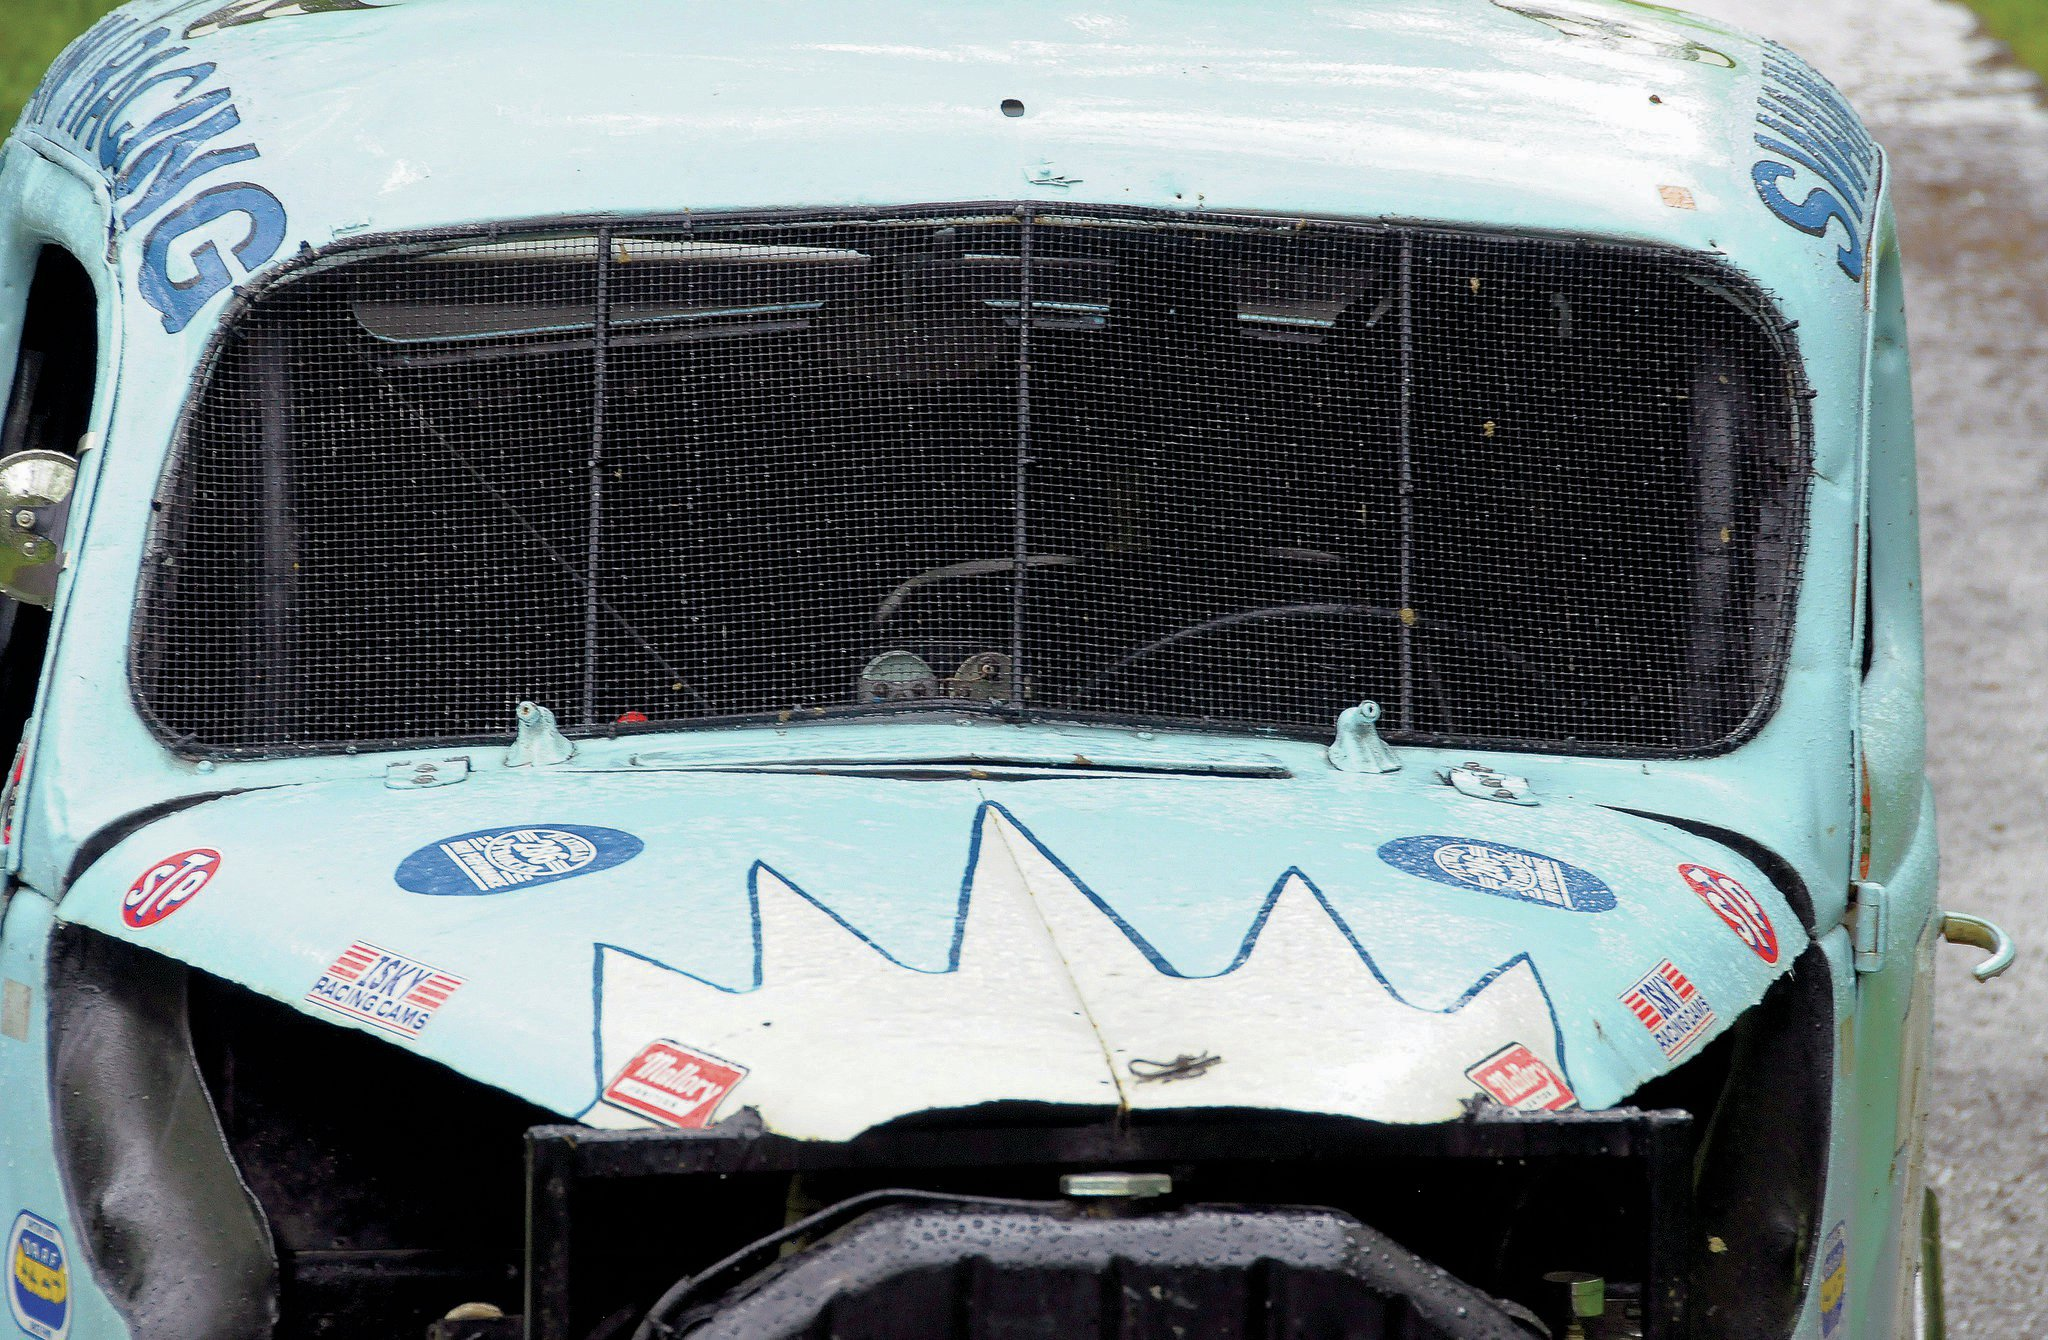 To contain inbound dirt clods and rocks, the windshield opening is covered by chicken wire. Look closely and you see that the wiper towers are still in position.